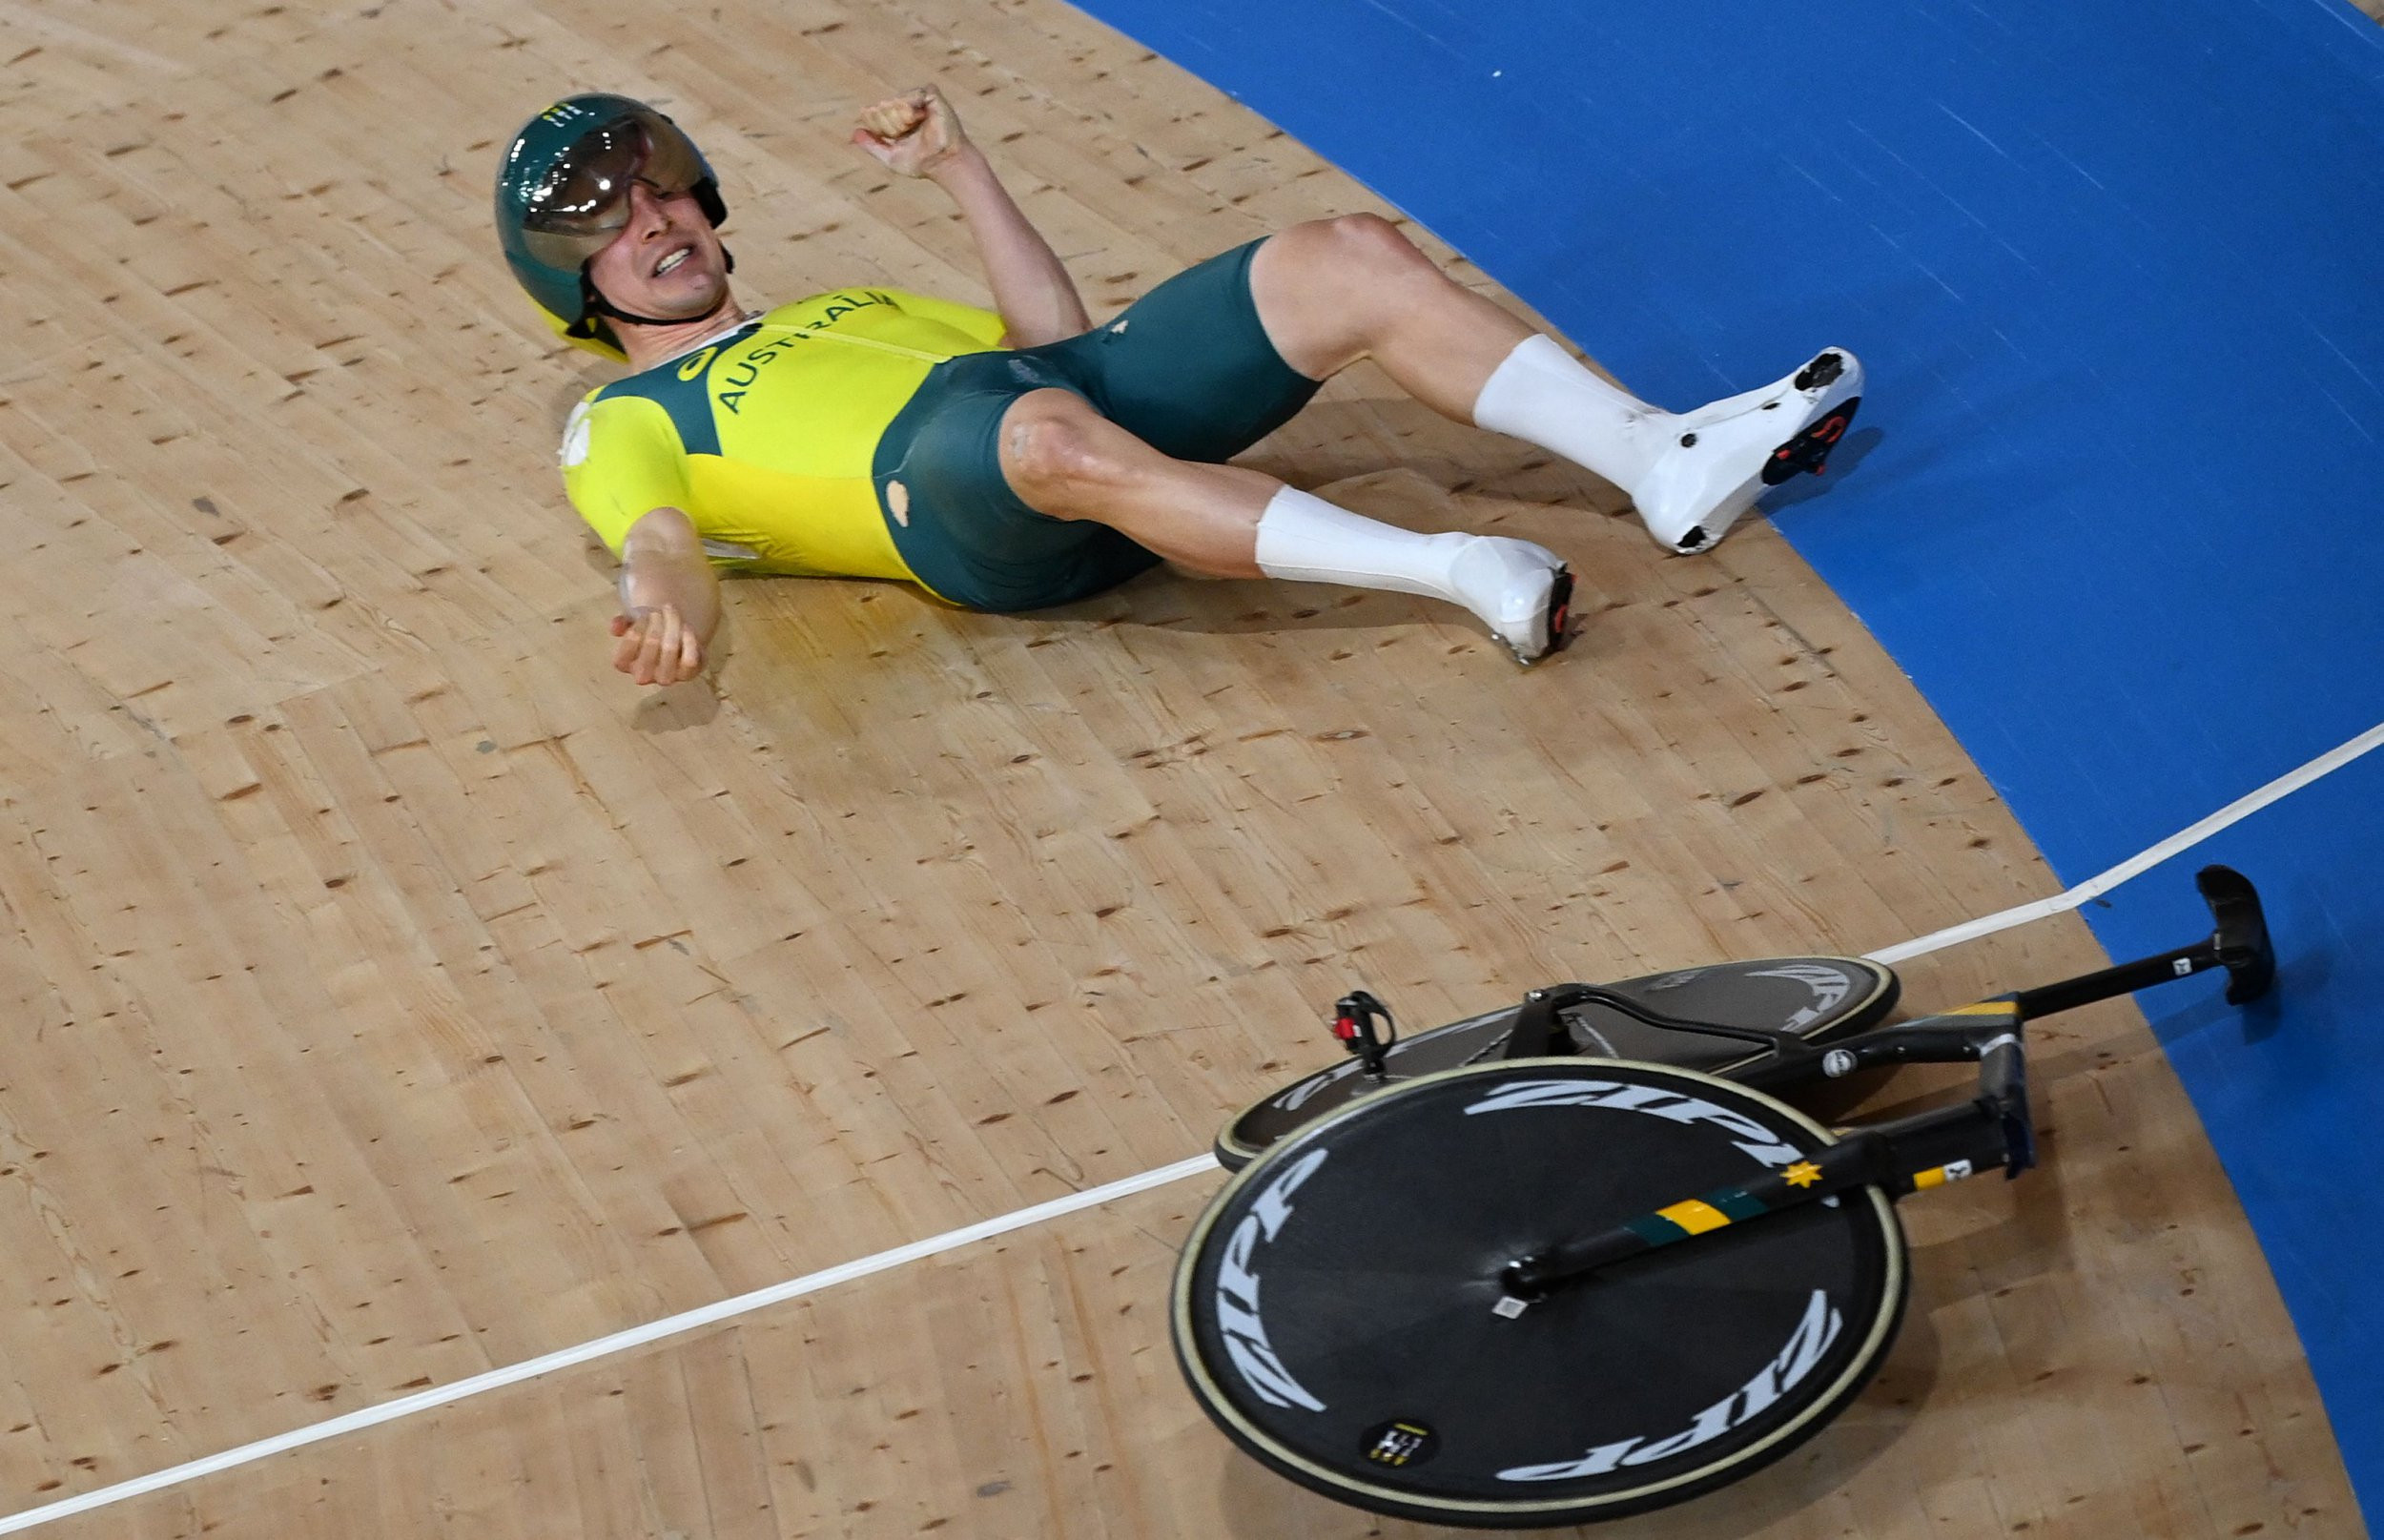 Ouch! Australian track cyclist crashes after handlebars give way during Olympic team pursuit